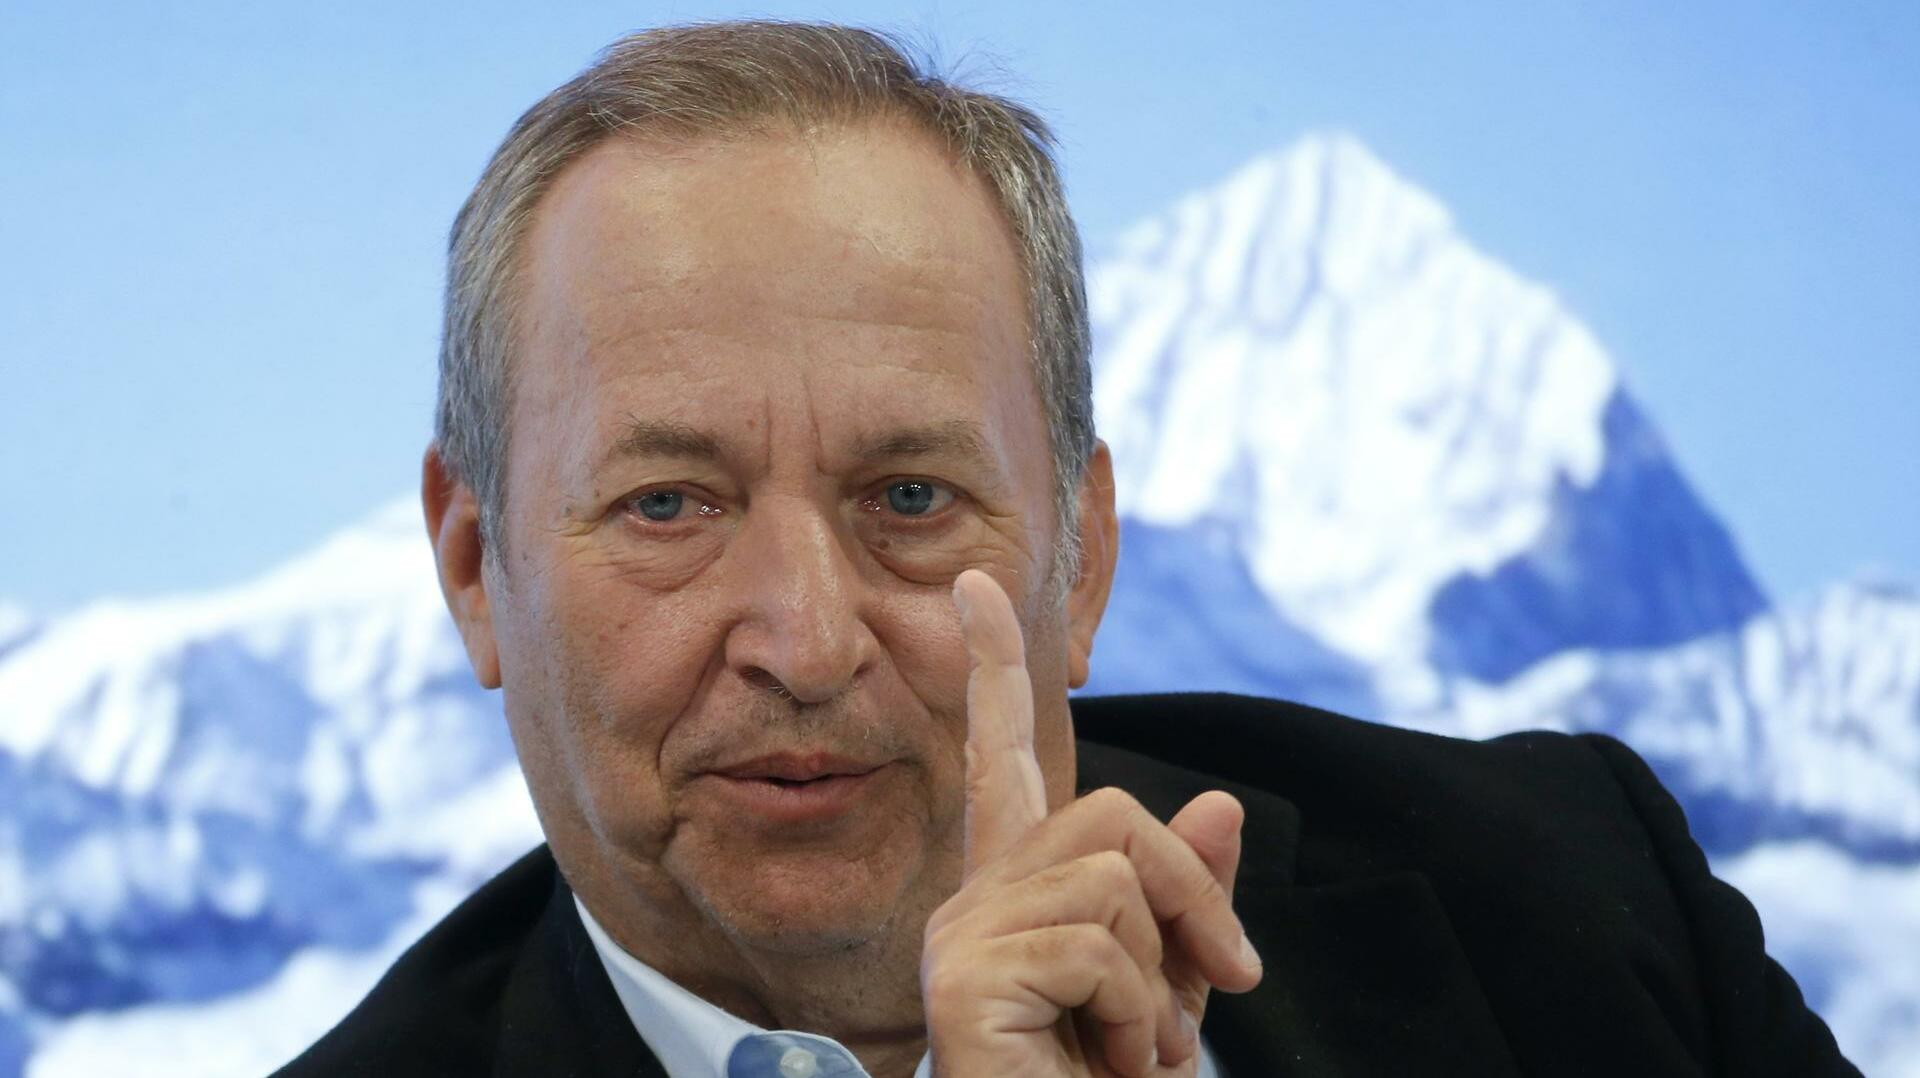 Lawrence Summers, US-Ökonom